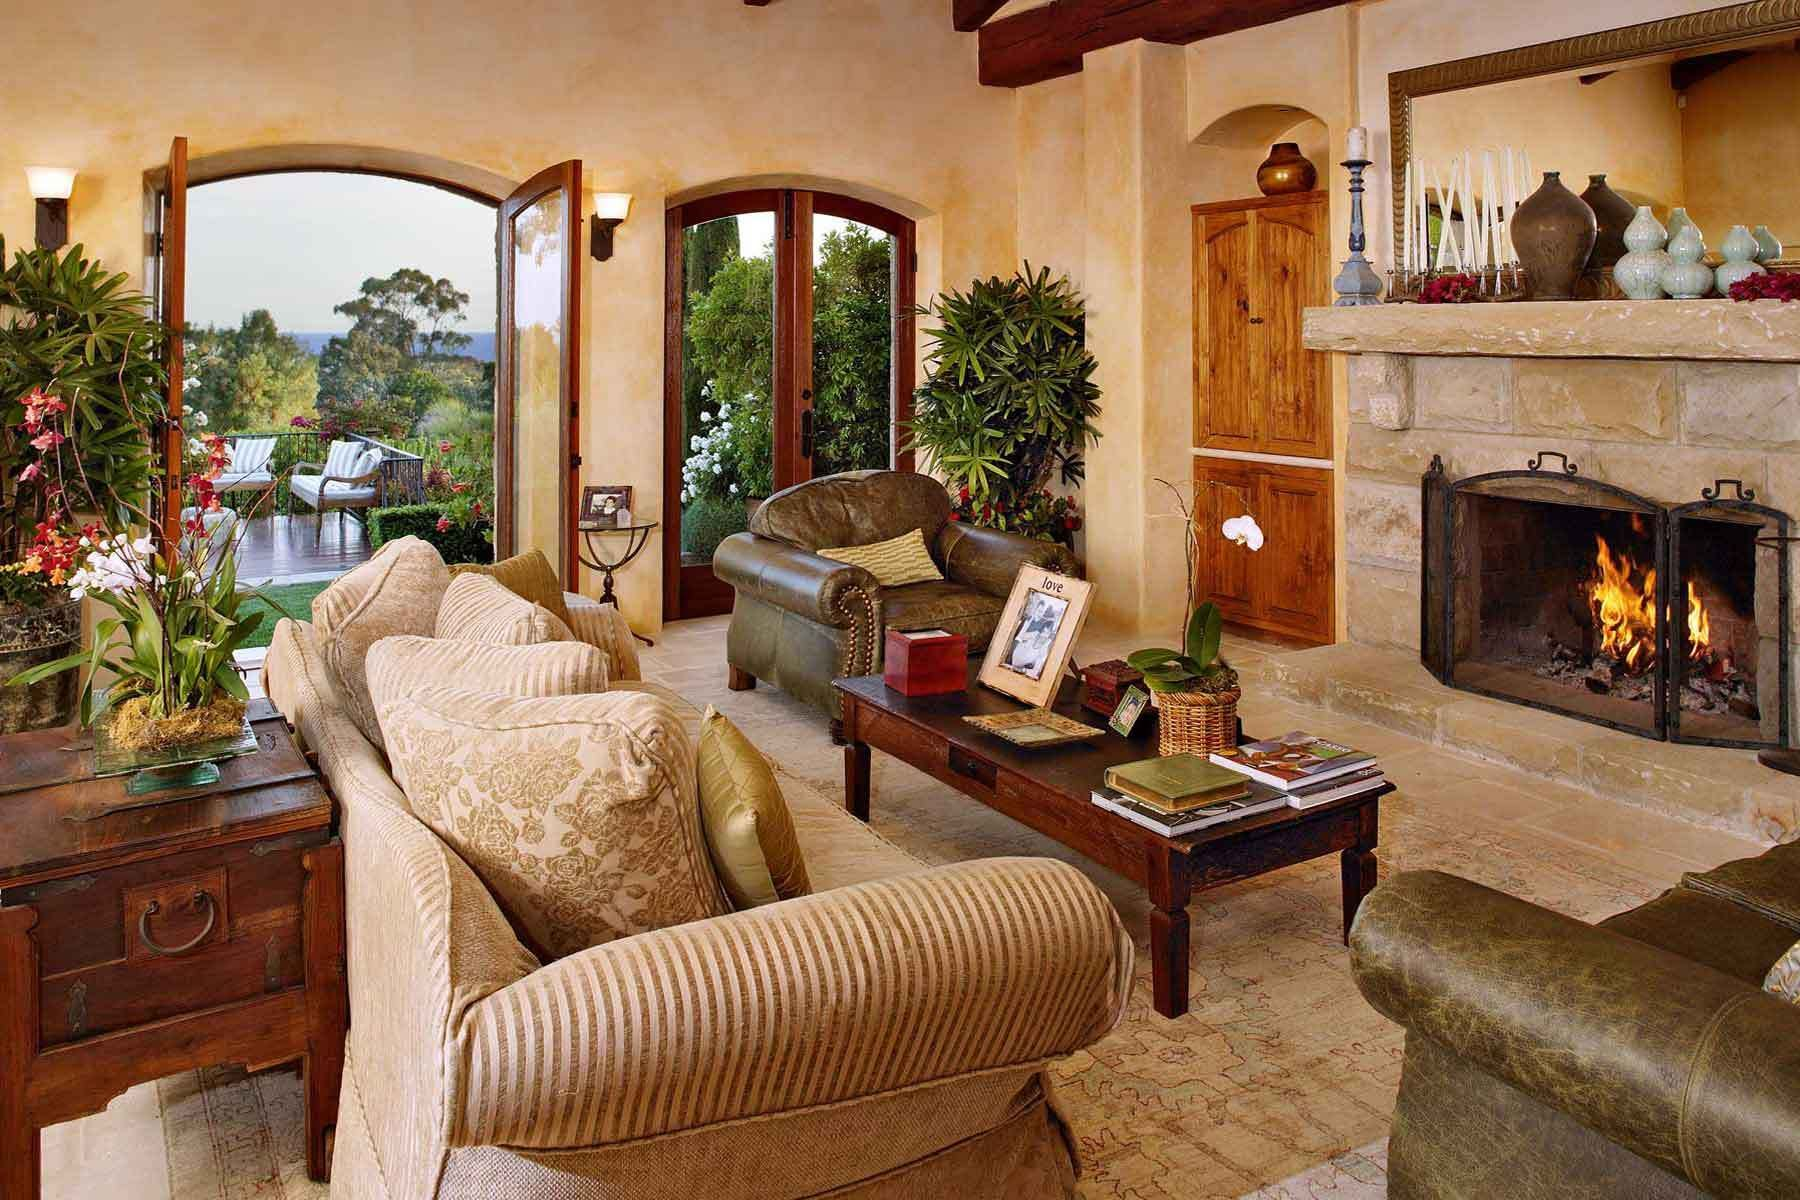 9 Amazing Living Rooms With Tuscan Decor - Housely  Tuscan